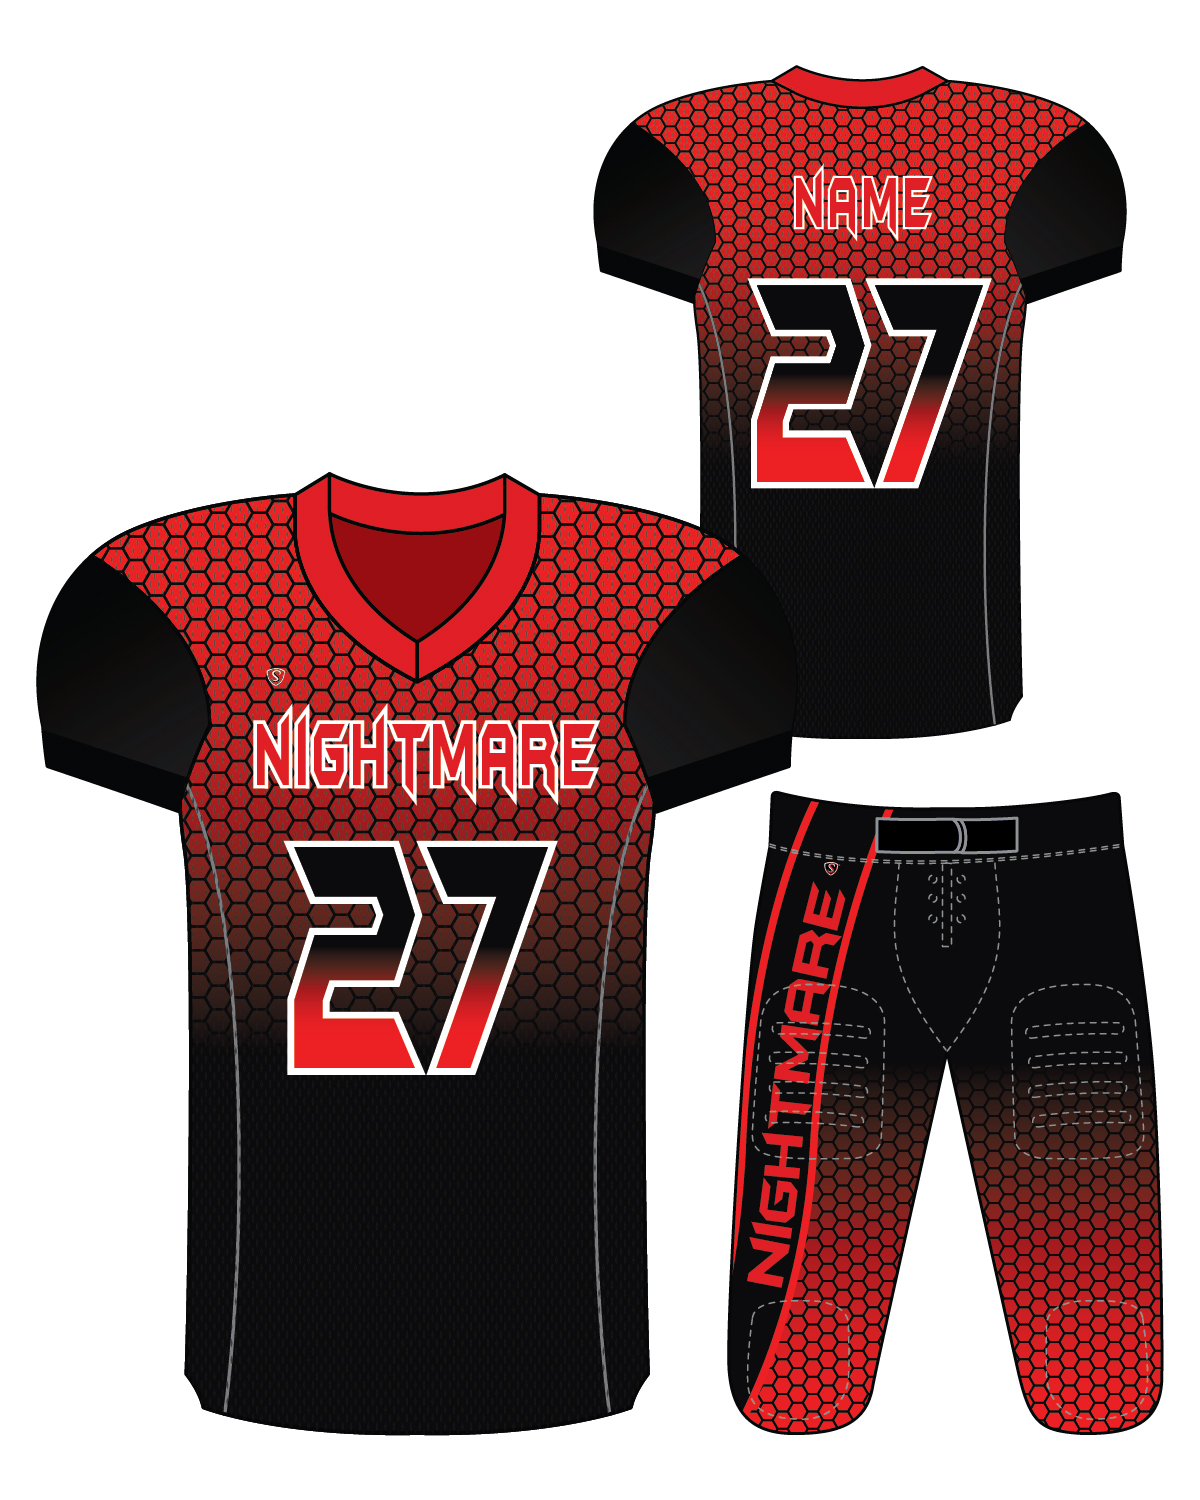 Sublimated Jersey - Nightmare